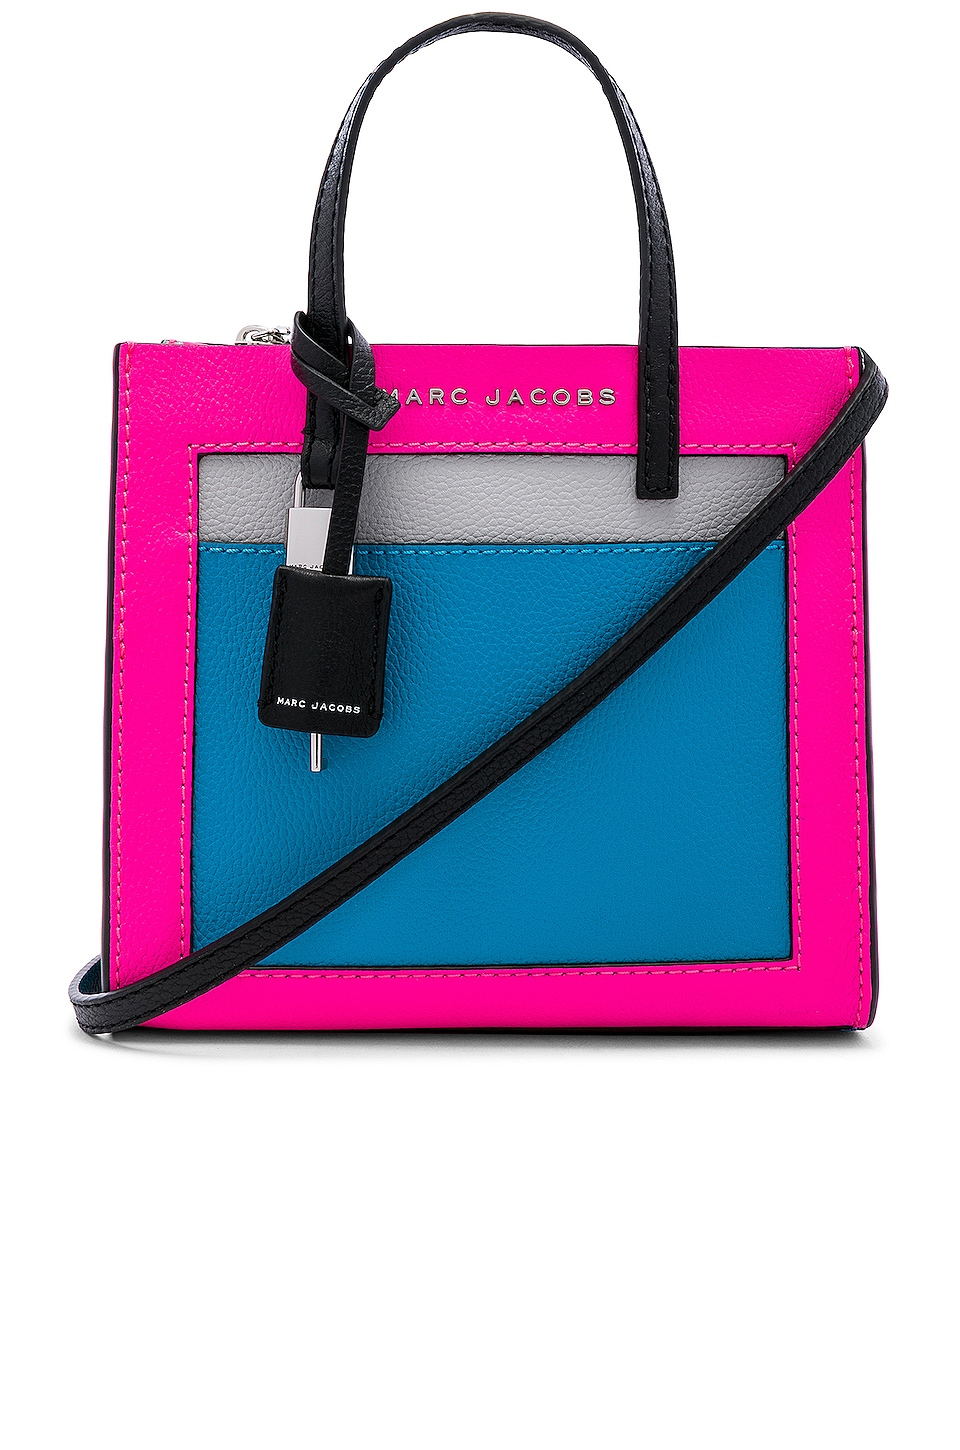 Marc Jacobs Mini Grind in Bright Pink Multi